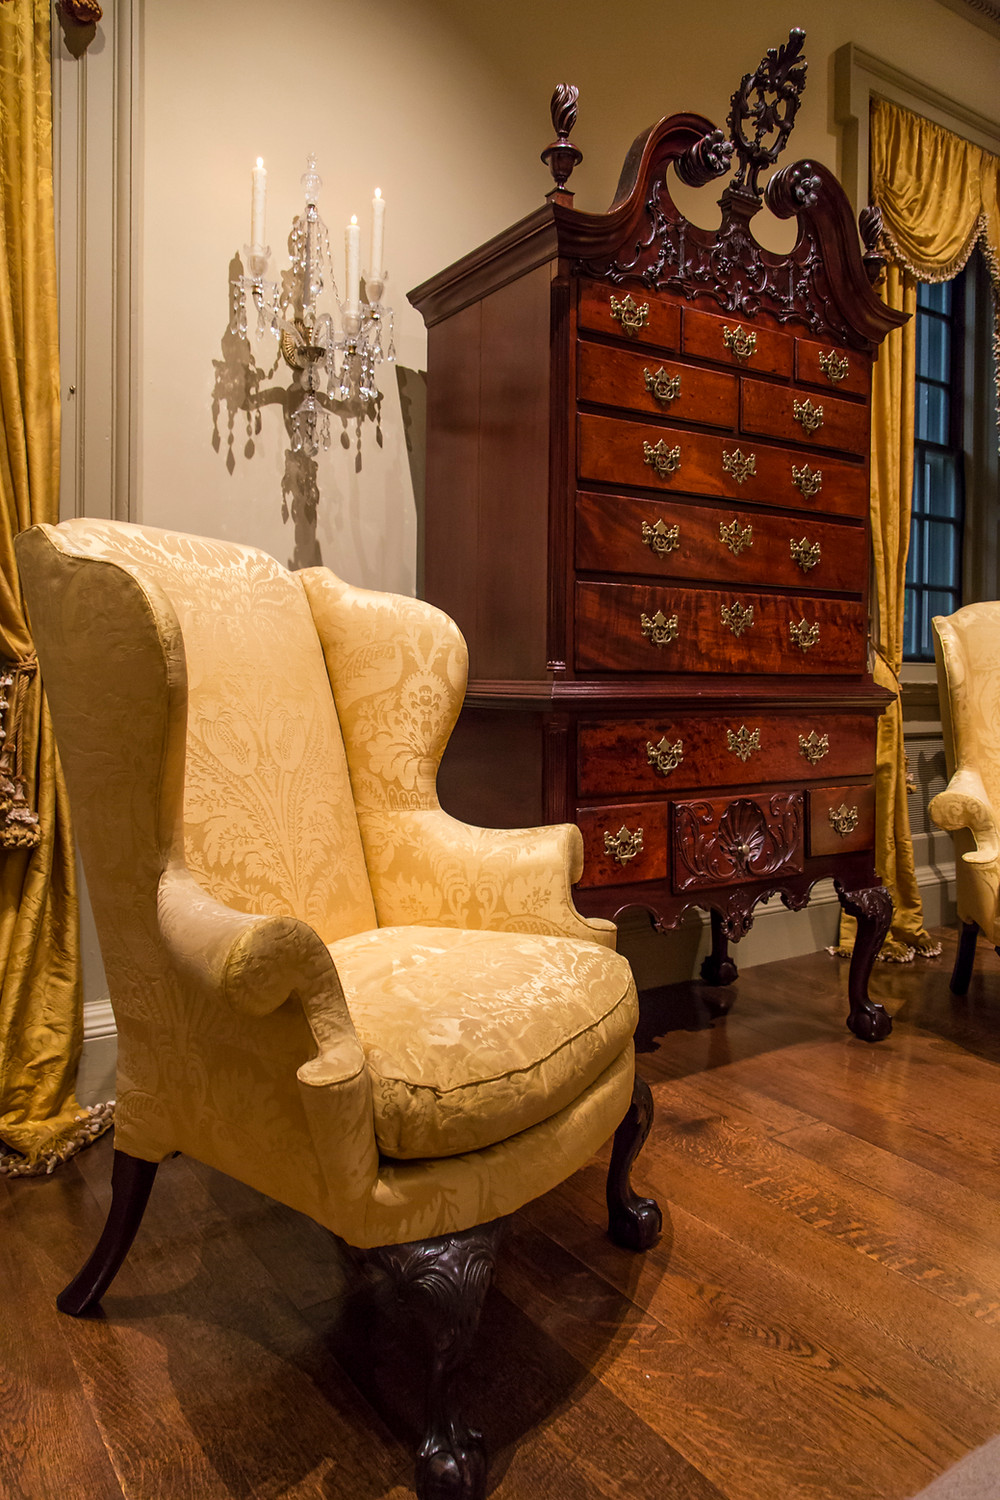 The Port Royal Parlor at Winterthur with the Turner-Van Pelt family high chest